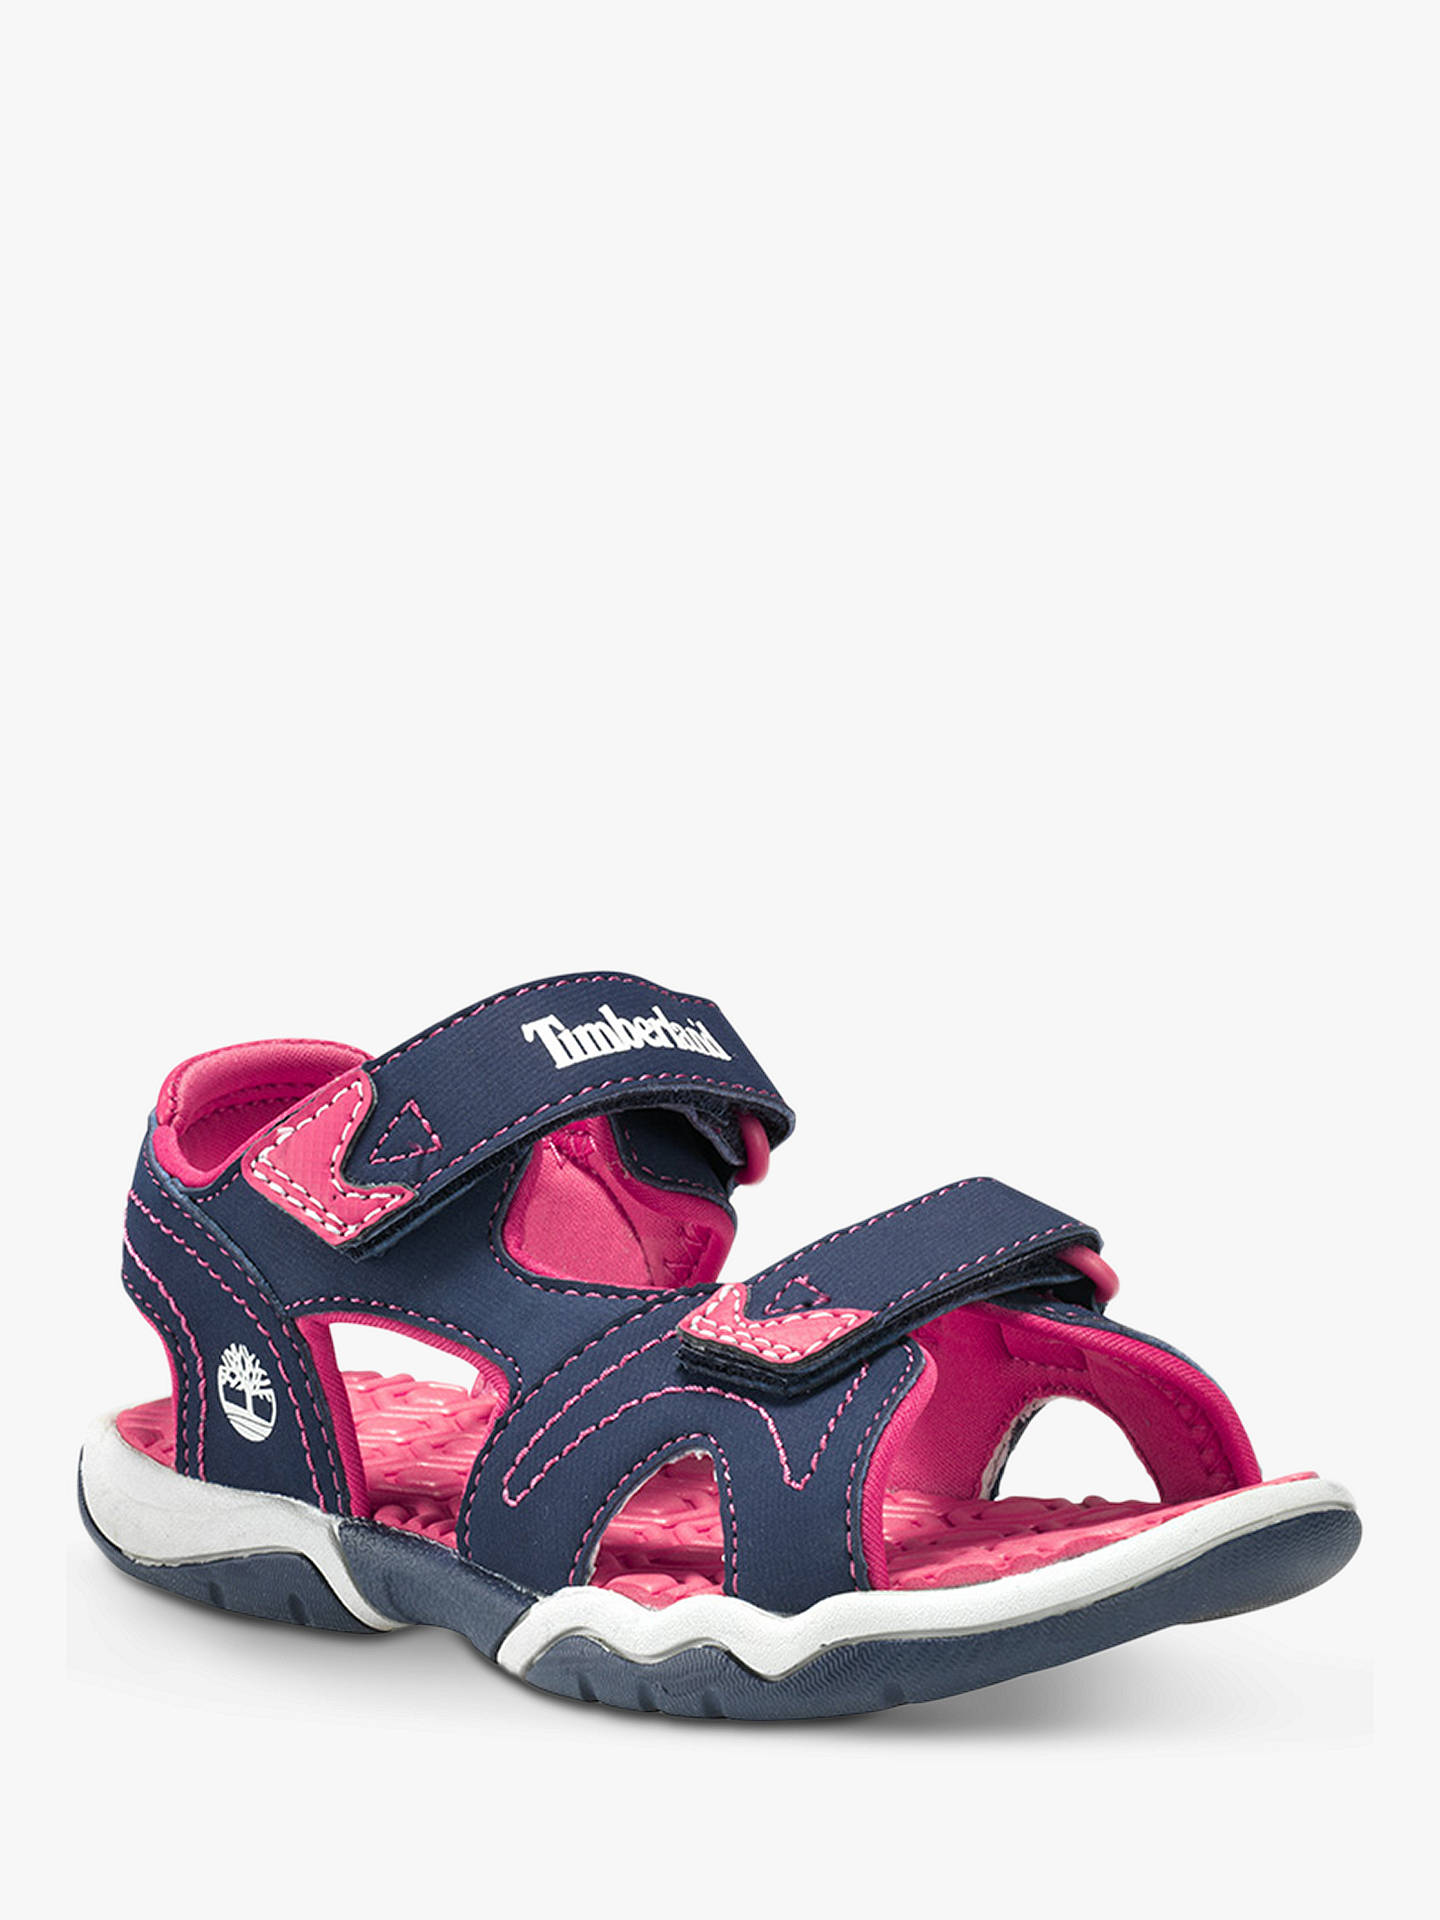 diseño profesional buscar oficial venta caliente real Timberland Children's Adventure Seeker Rip-Tape Sandals, Navy/Pink ...